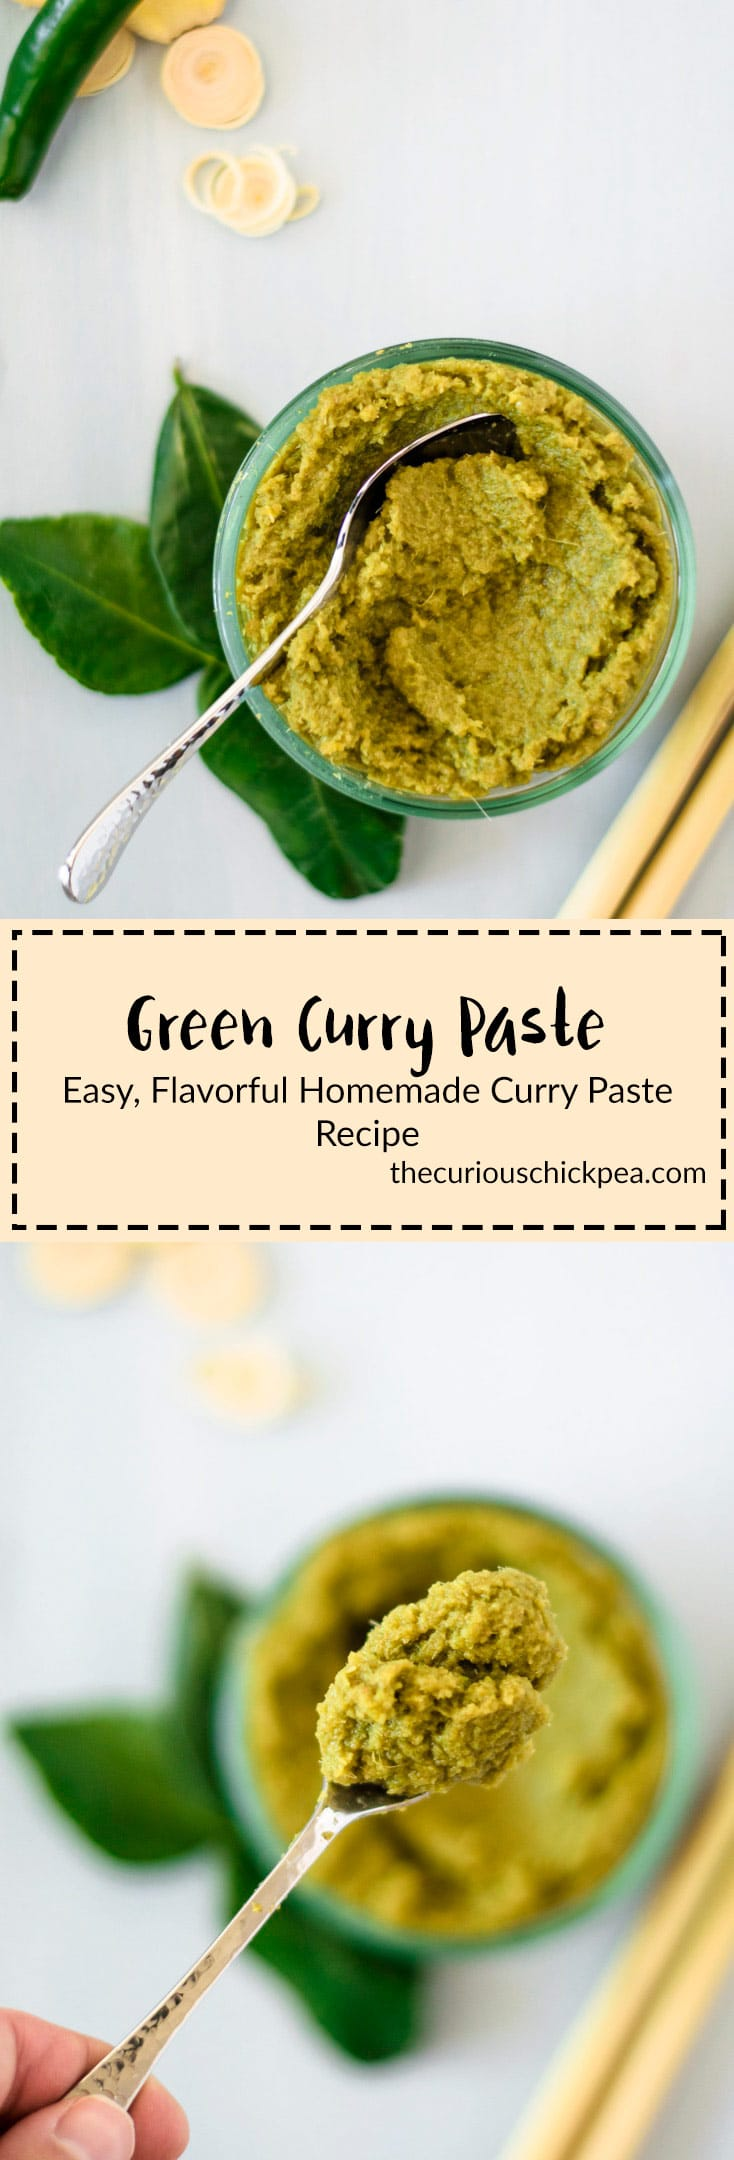 Homemade Green Curry Paste | Homemade Thai curry paste is incredibly easy to throw together and tastes so much fresher than store bought versions. Try it for yourself! Vegan, Gluten Free recipe | thecuriouschickpea.com #vegan #curry